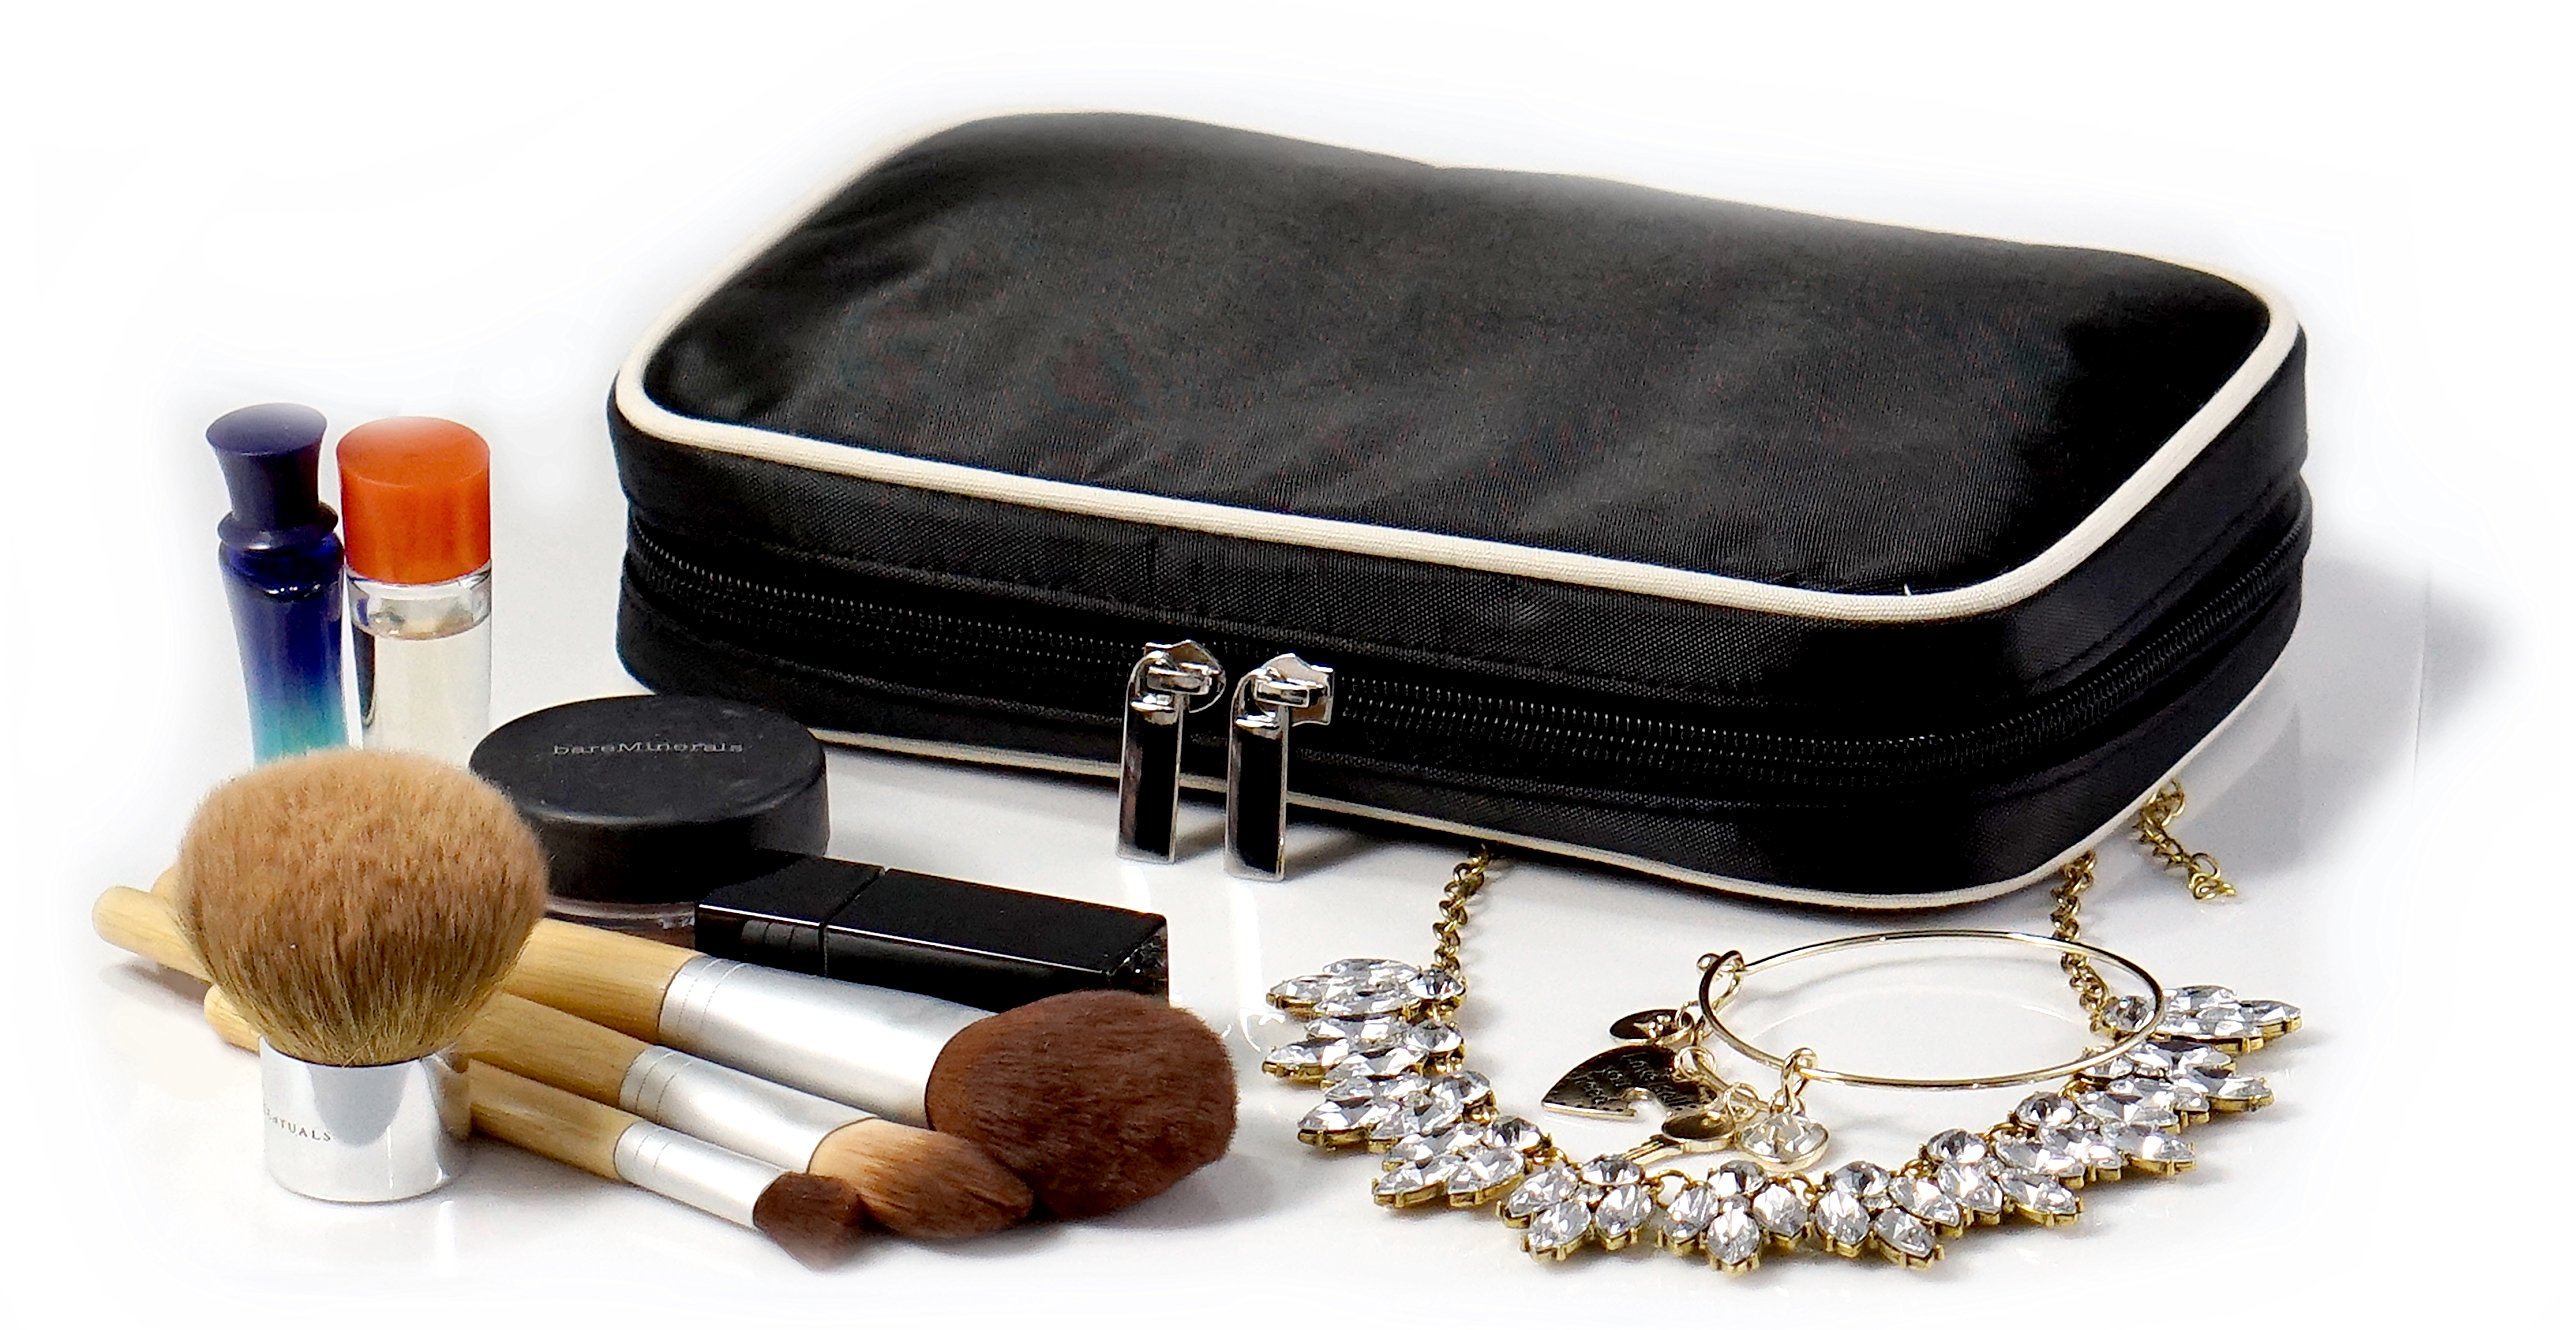 Jewelry & Accessories Travel Organizer Bag Case (Black) by Simple Accessories (Image #1)